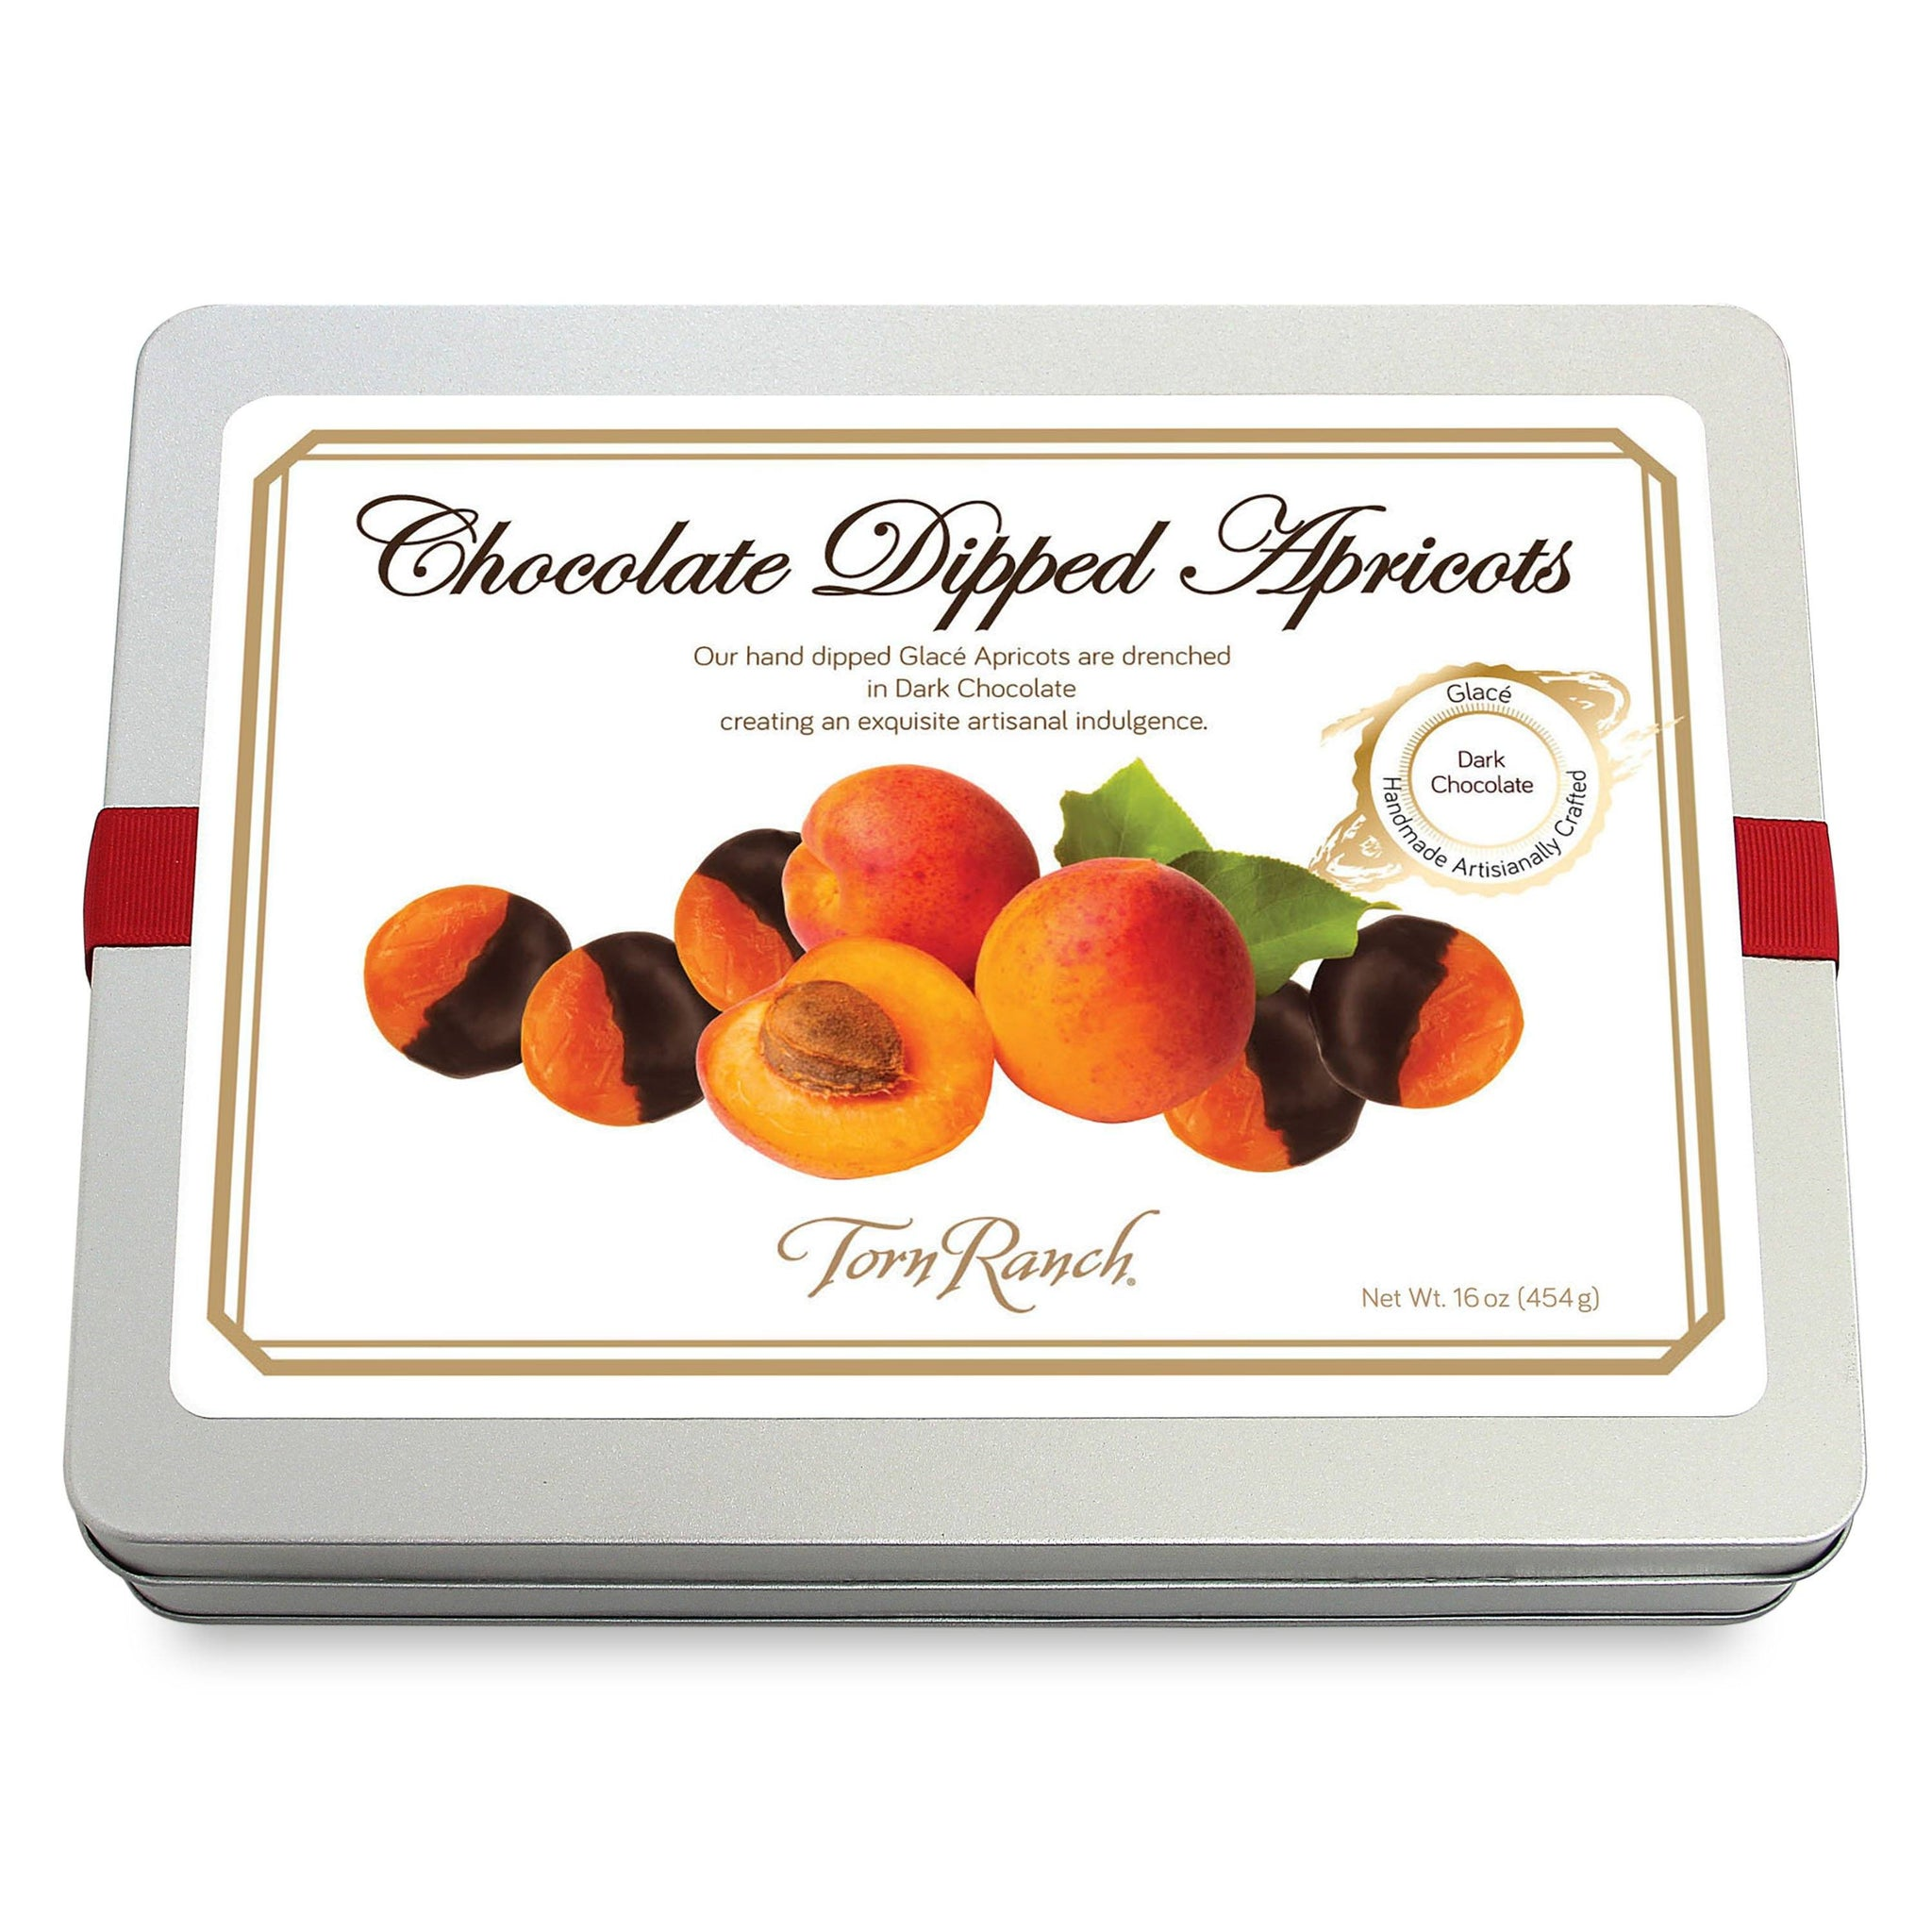 Chocolate Dipped Apricots Gourmet Chocolates & Toffee vendor-unknown